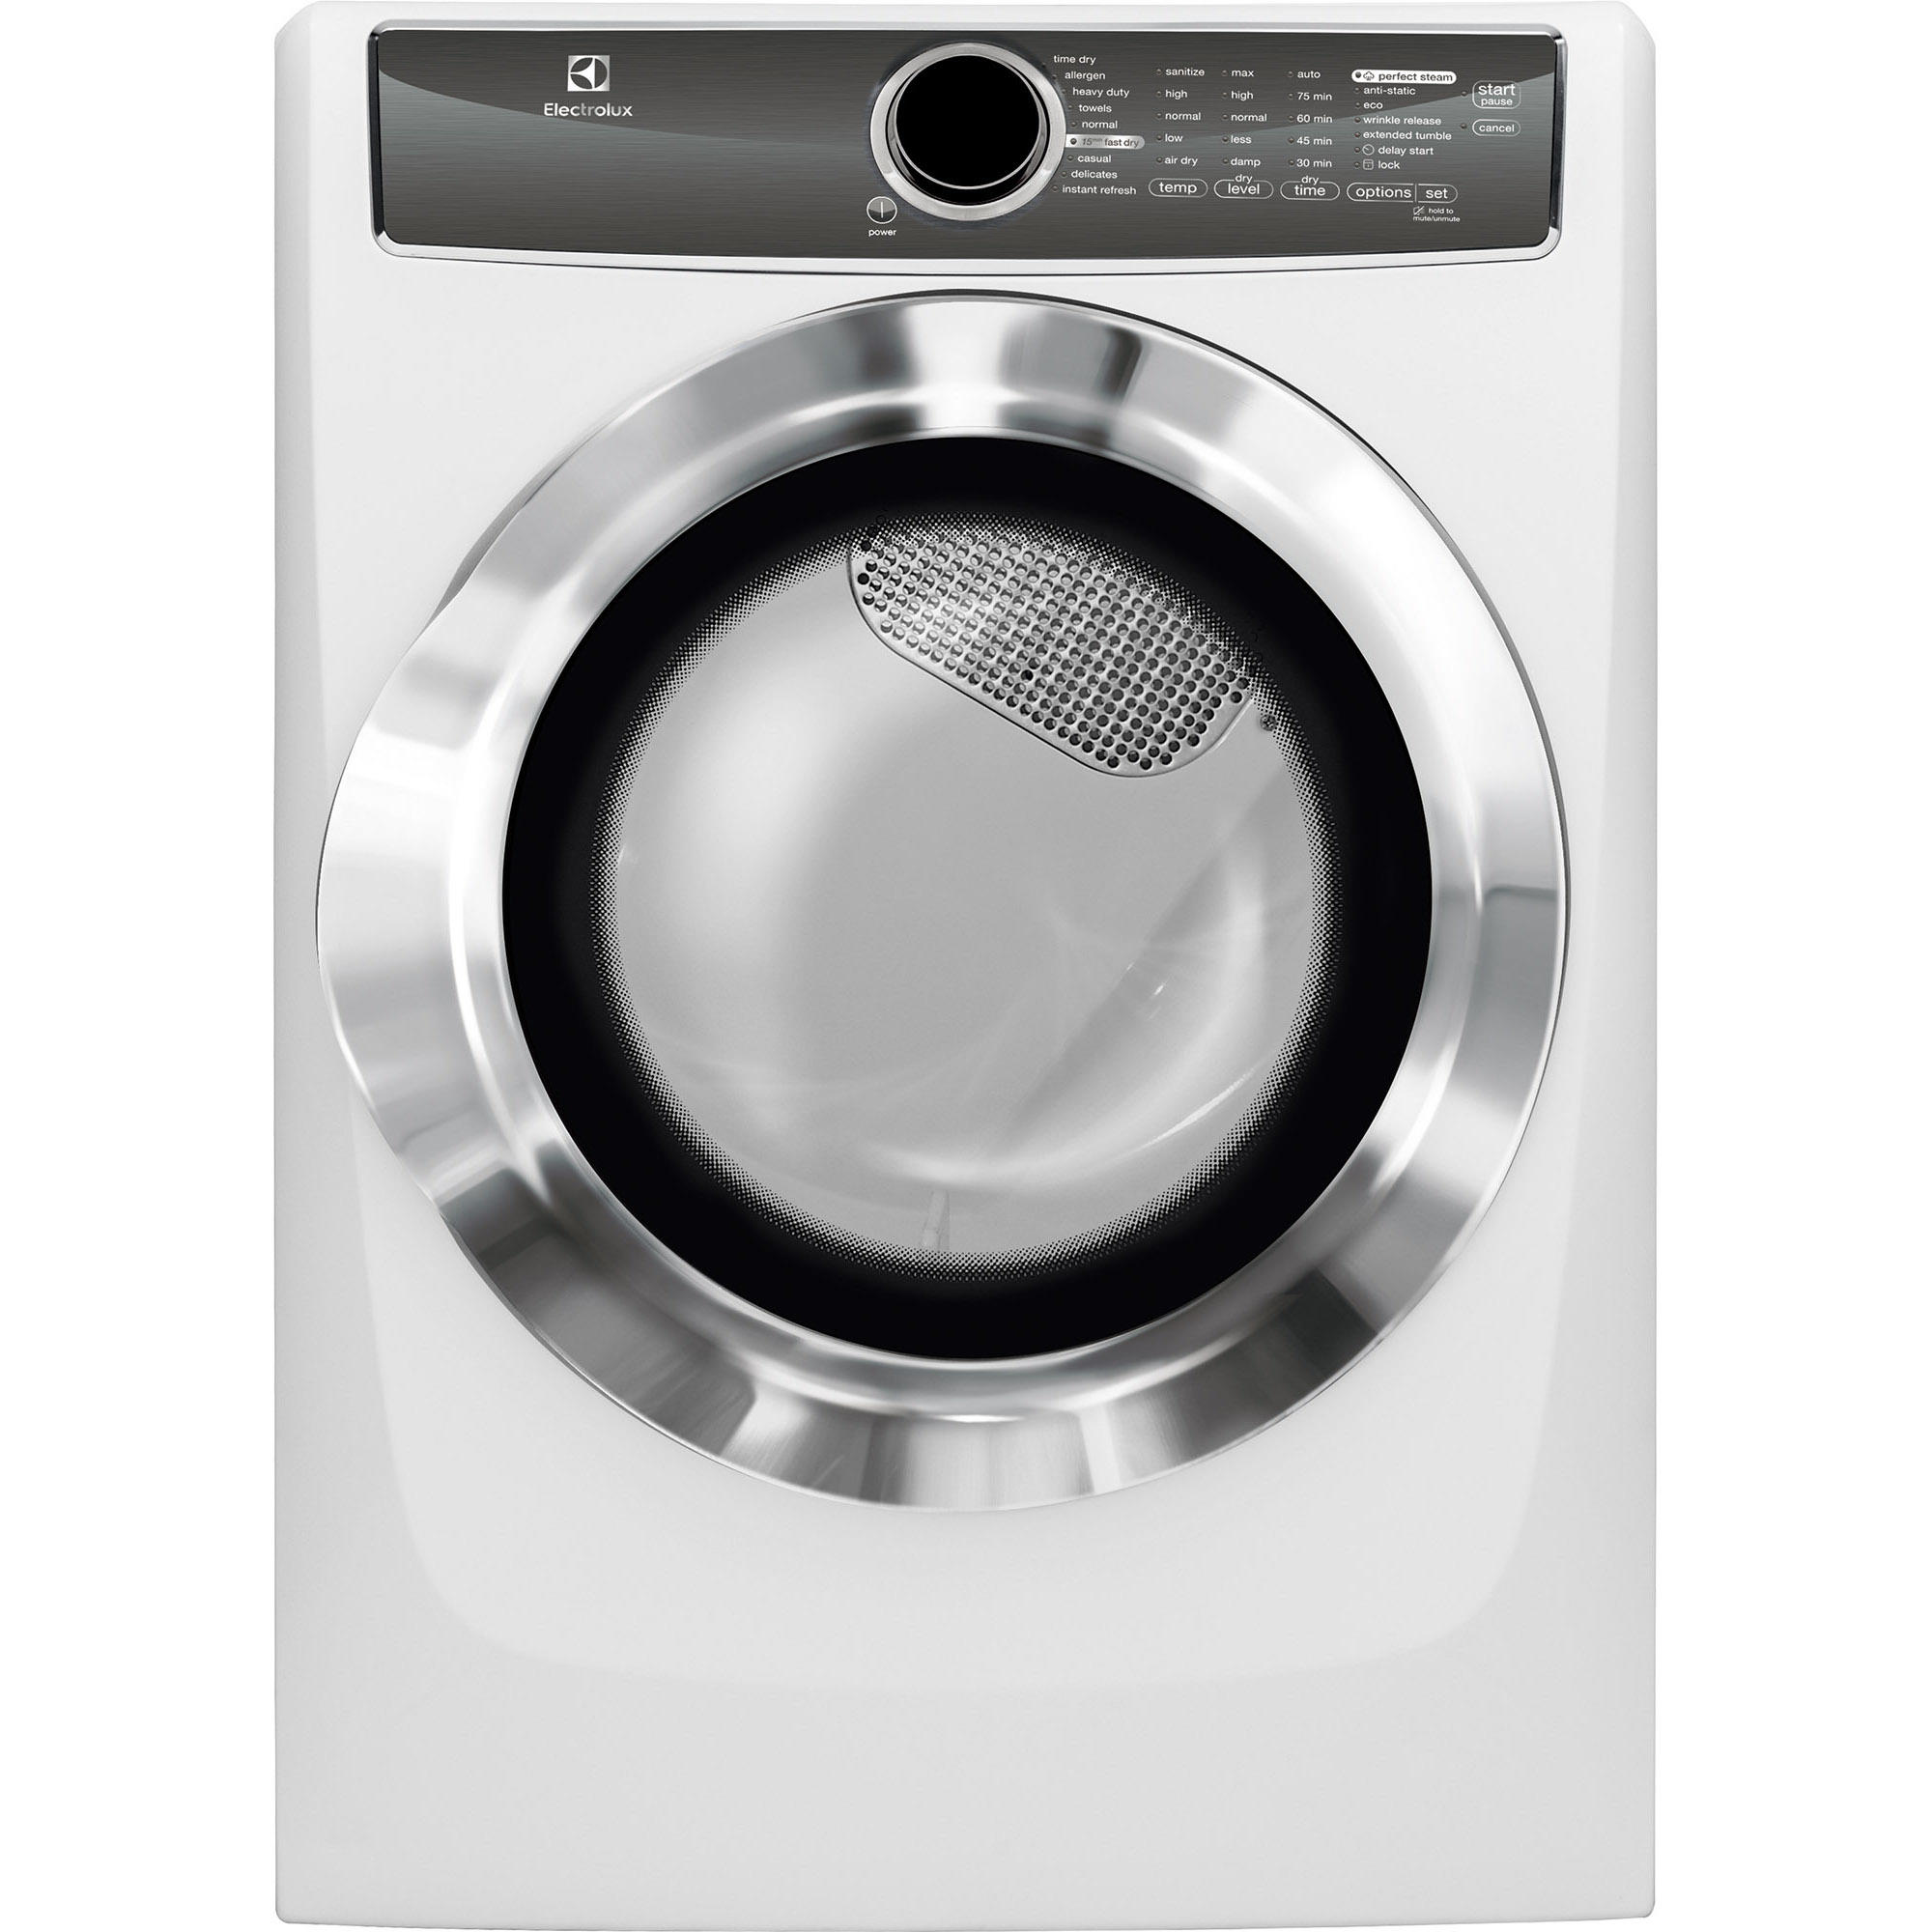 Electrolux EFMG617SIW 8.0 cu. ft. Gas Dryer w/ Allergen Cycle - White